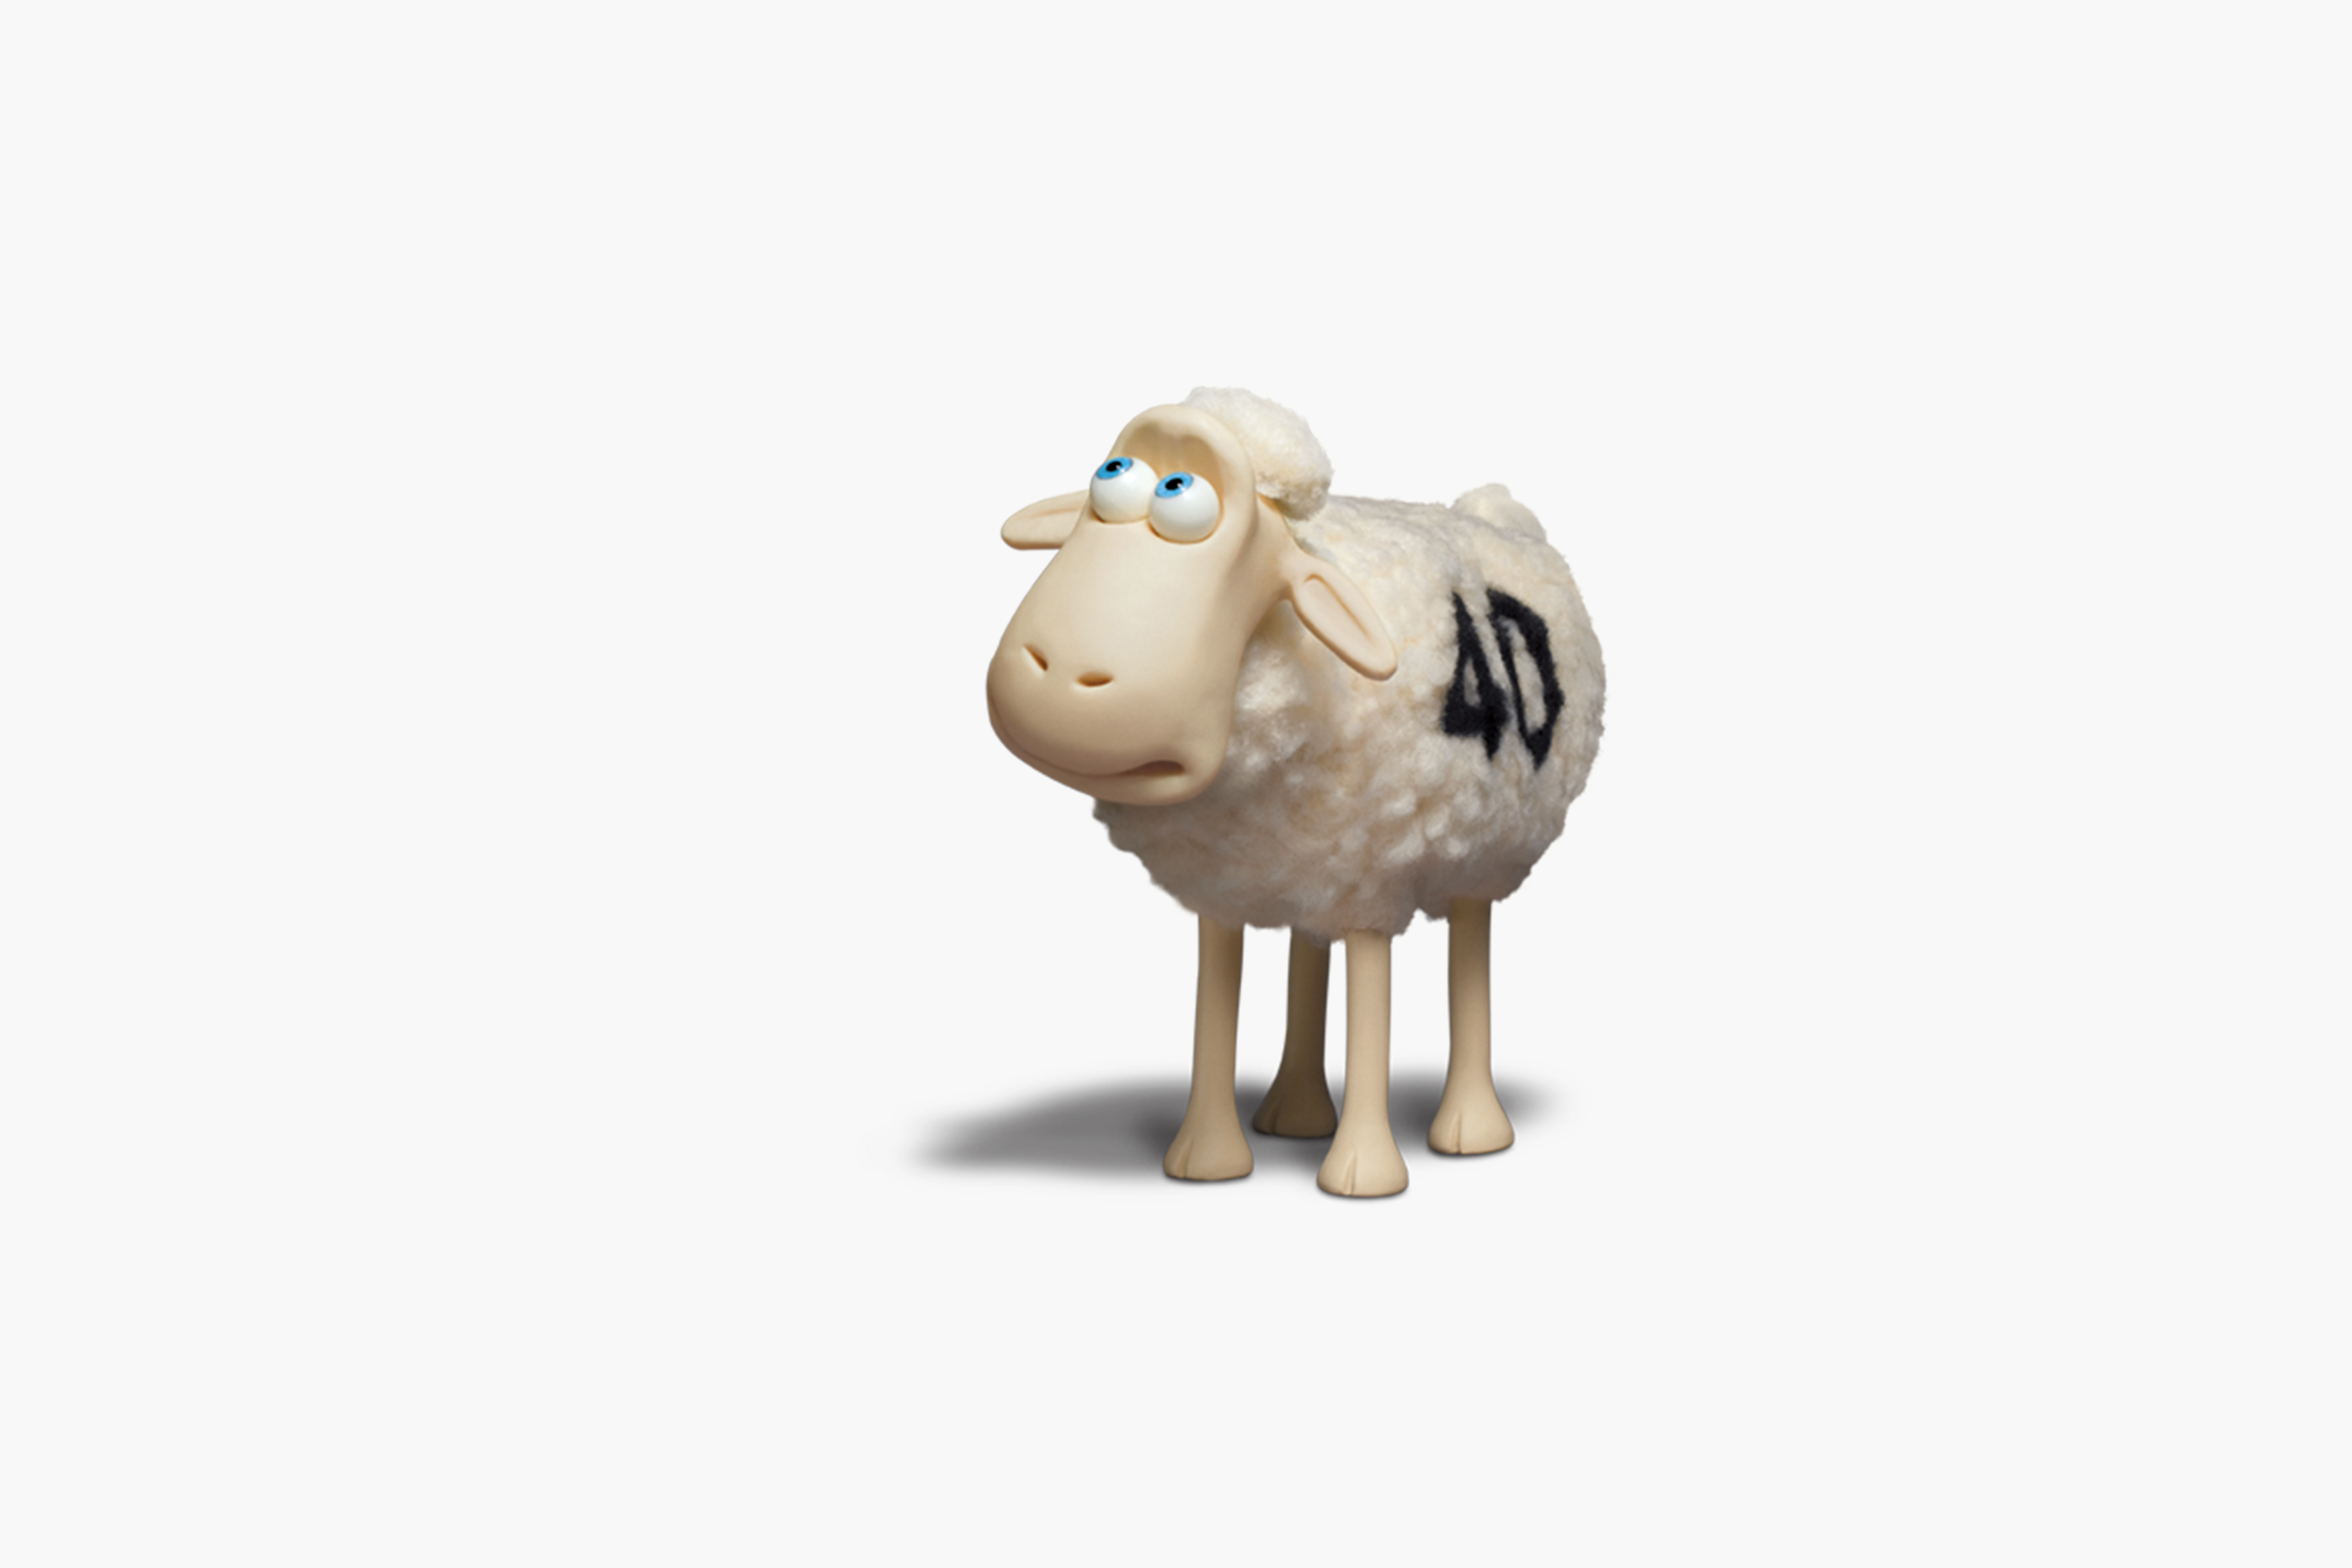 Single Serta sheep